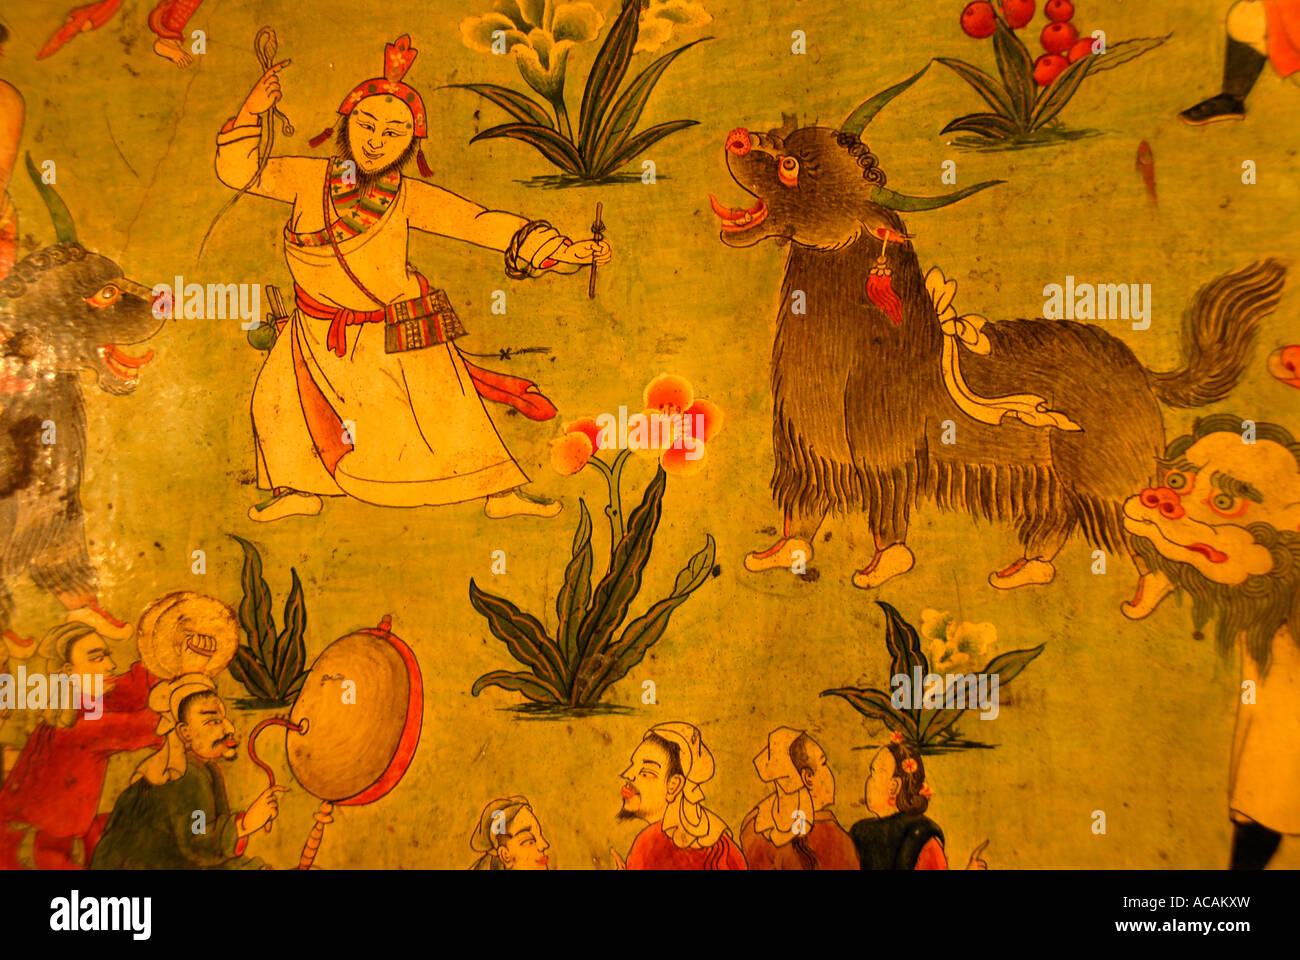 Tibetan Buddhism naive wall painting man with yaks Jokhang Lhasa Tibet China - Stock Image